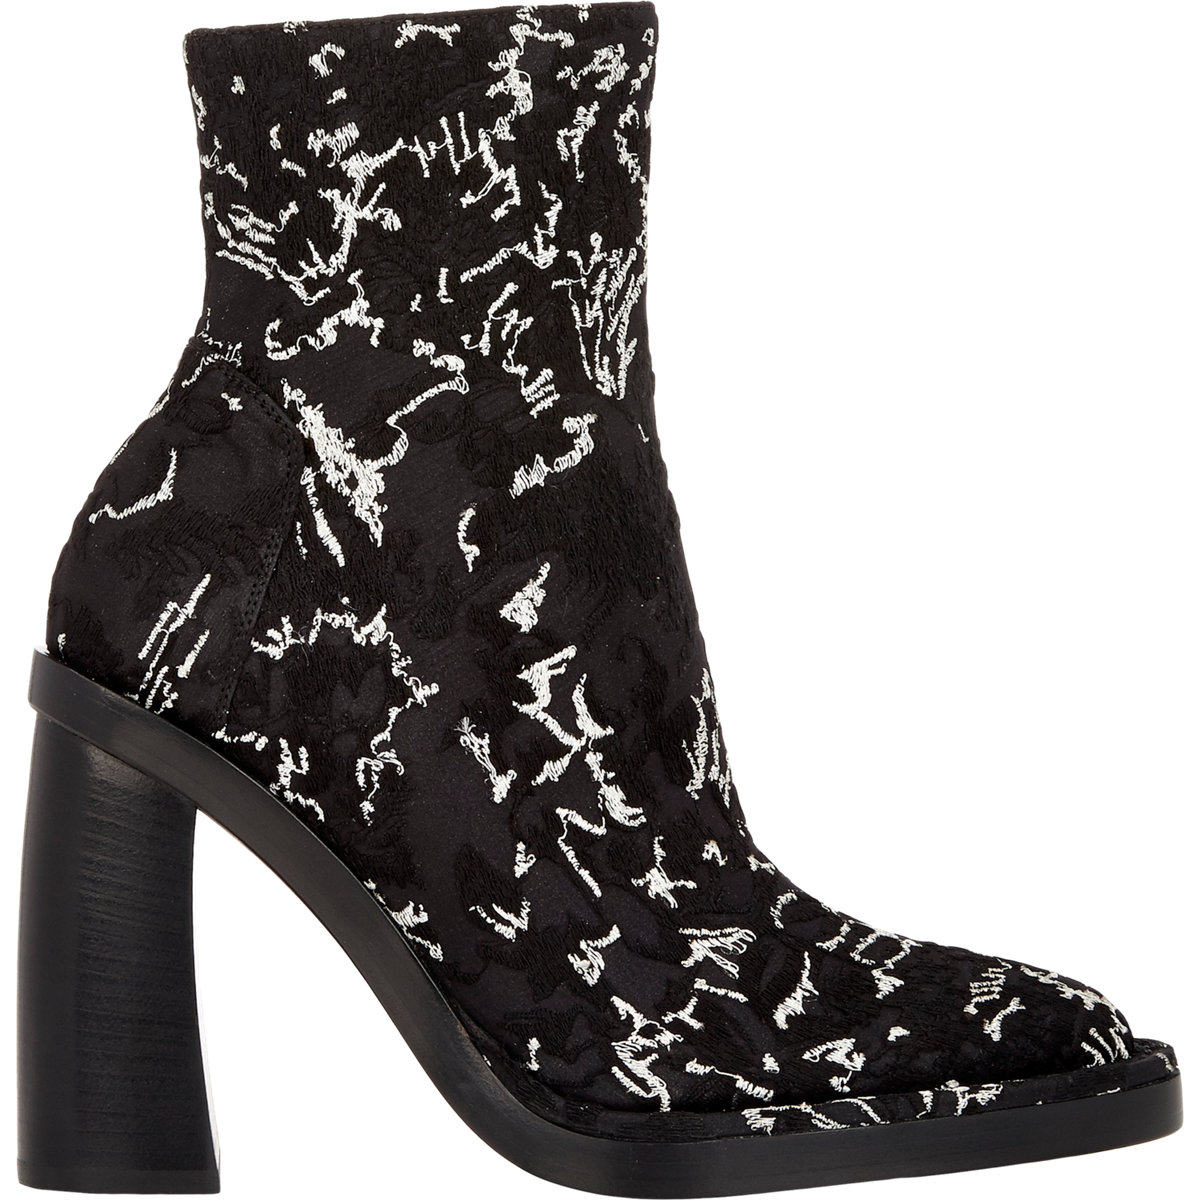 35430e04d4f Lyst - Ann Demeulemeester Curved-heel Jacquard Ankle Boots in Black